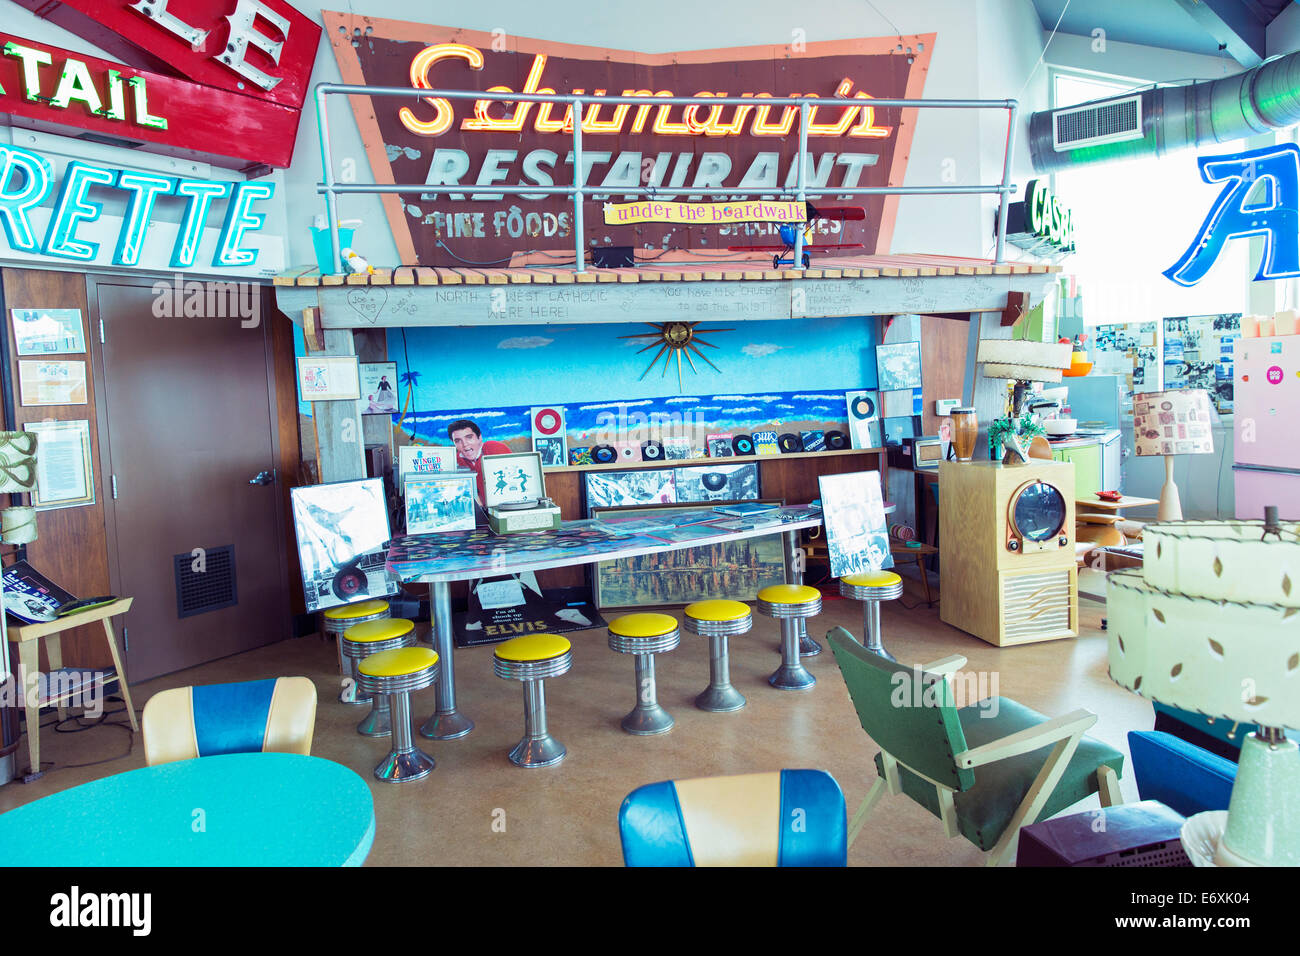 USA,New Jersey,Wildwood's,Doo Wop Experience and Neon Sign Garden - Stock Image